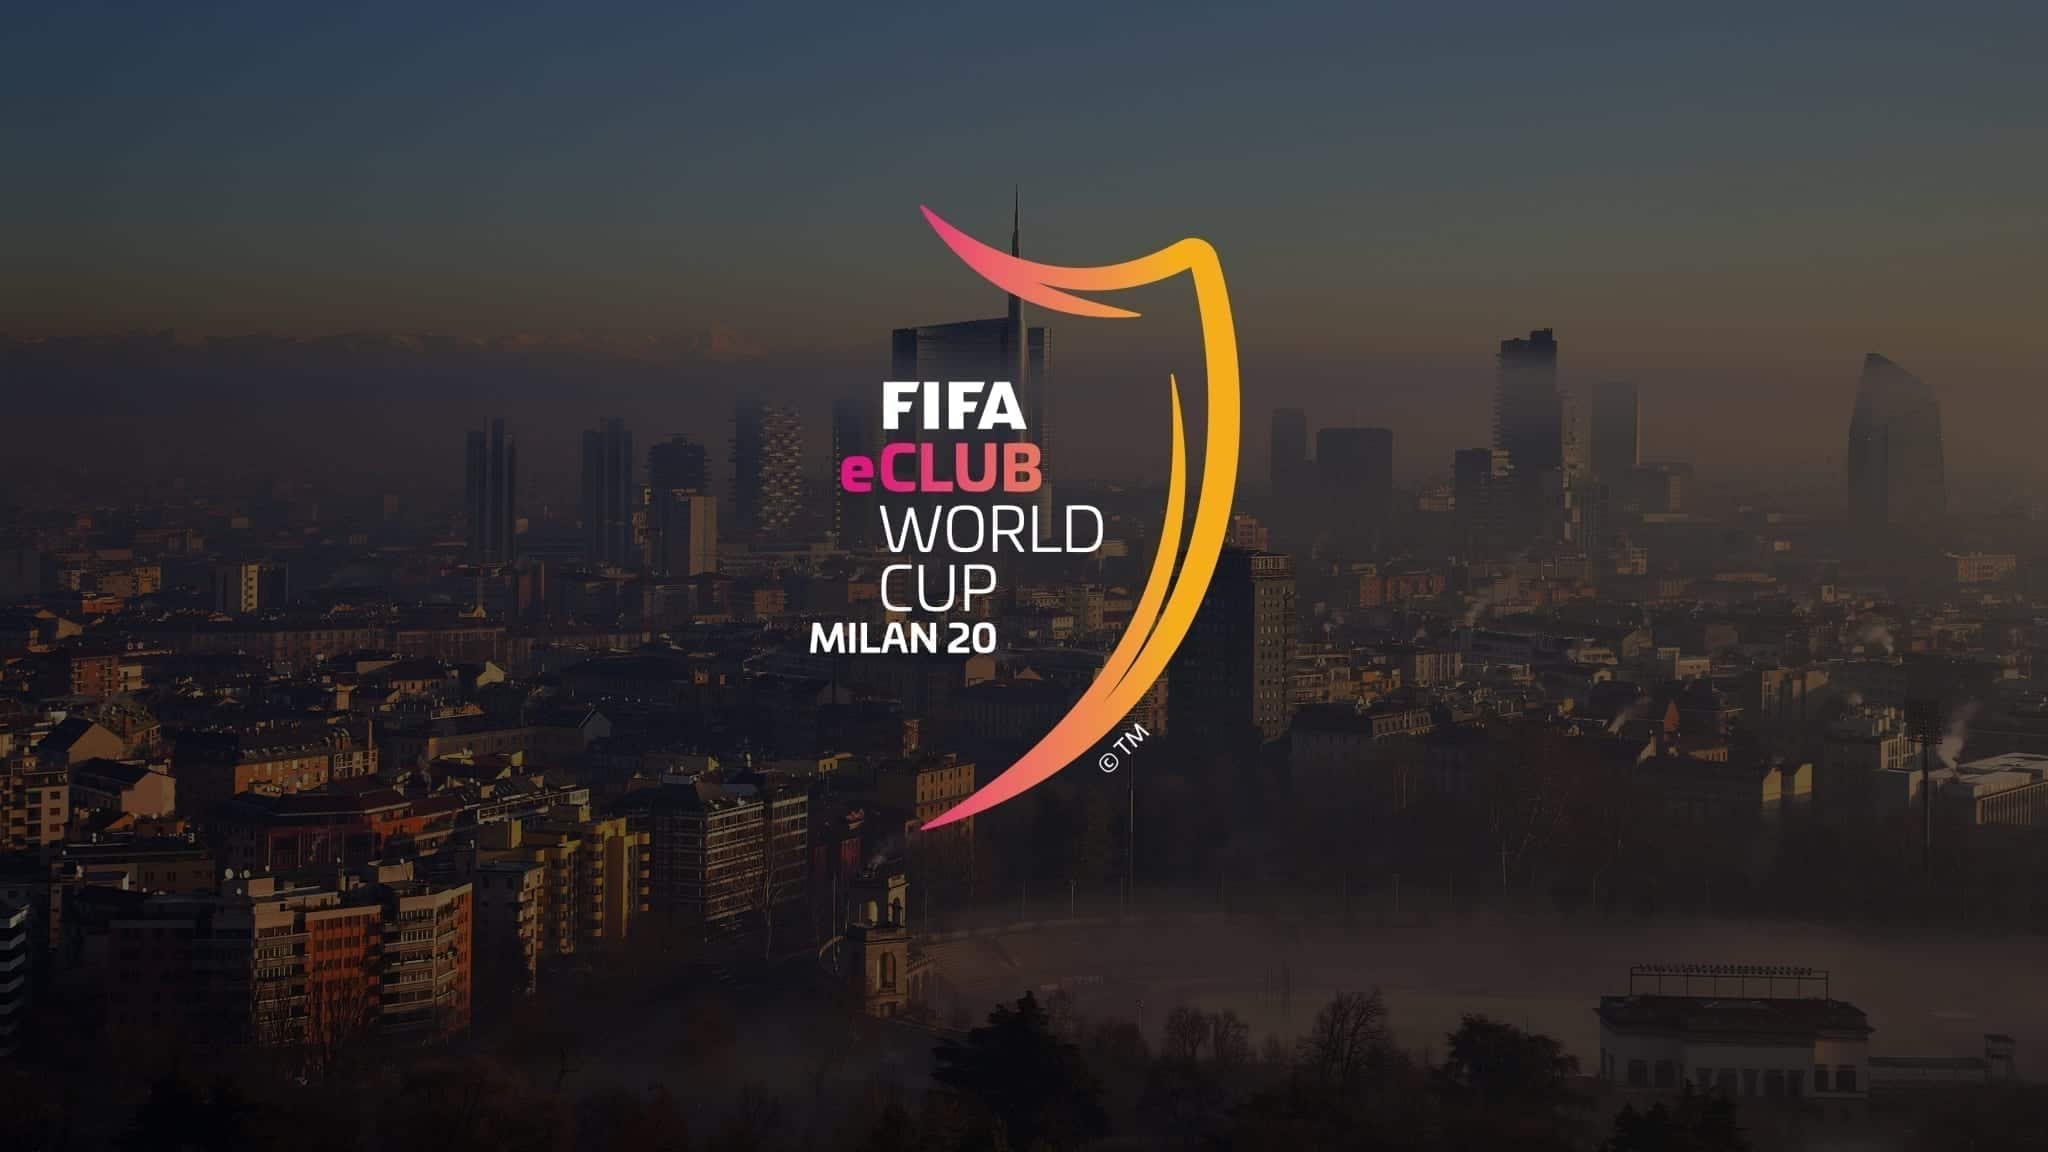 How to watch the FIFA eClub World Cup